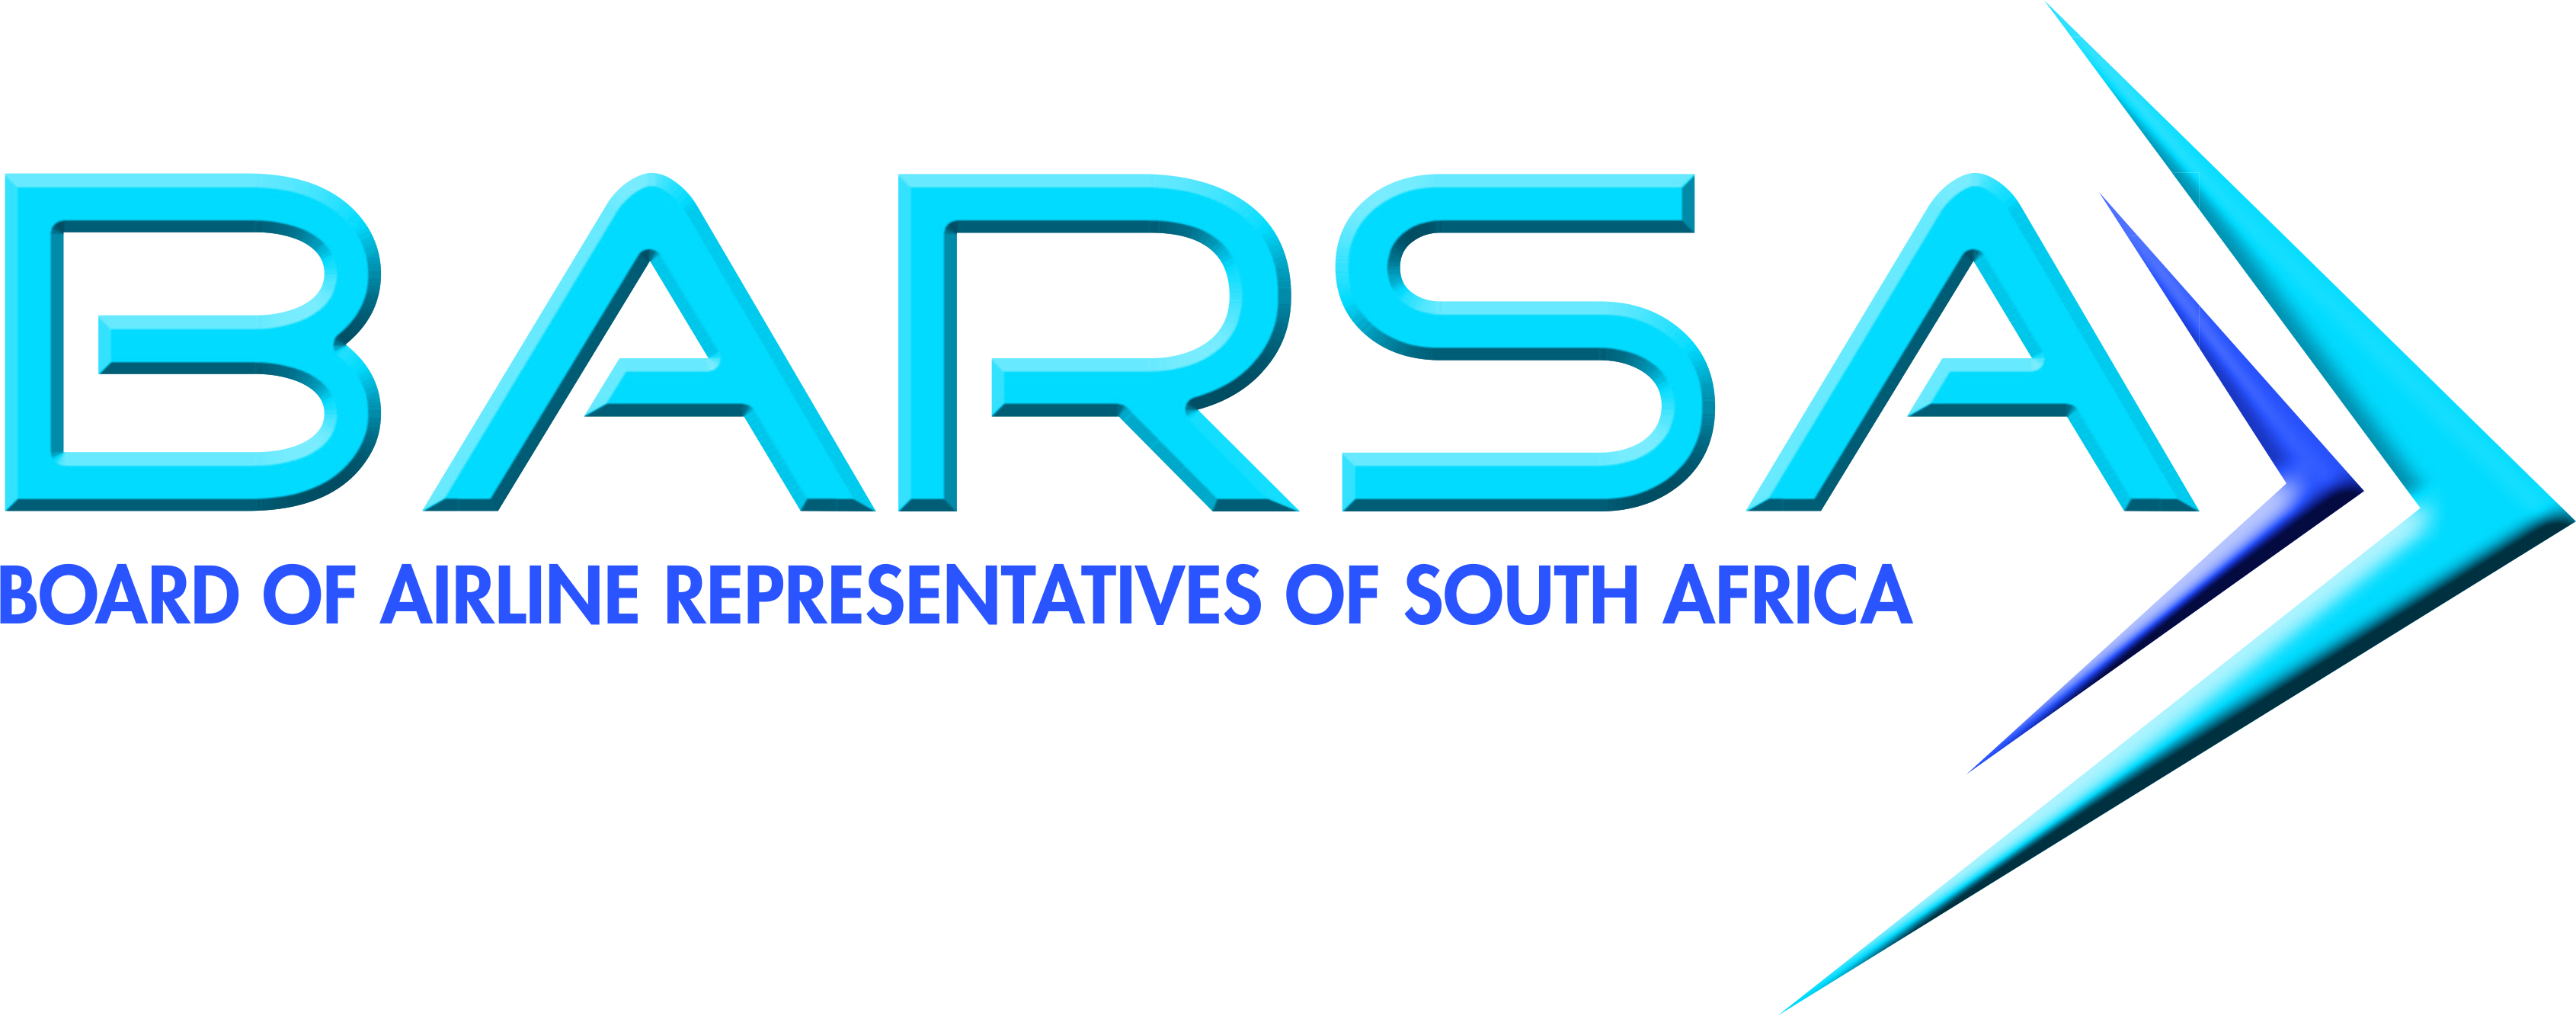 Board of Airline Representatives of South Africa, Sandton, Gauteng, South Africa